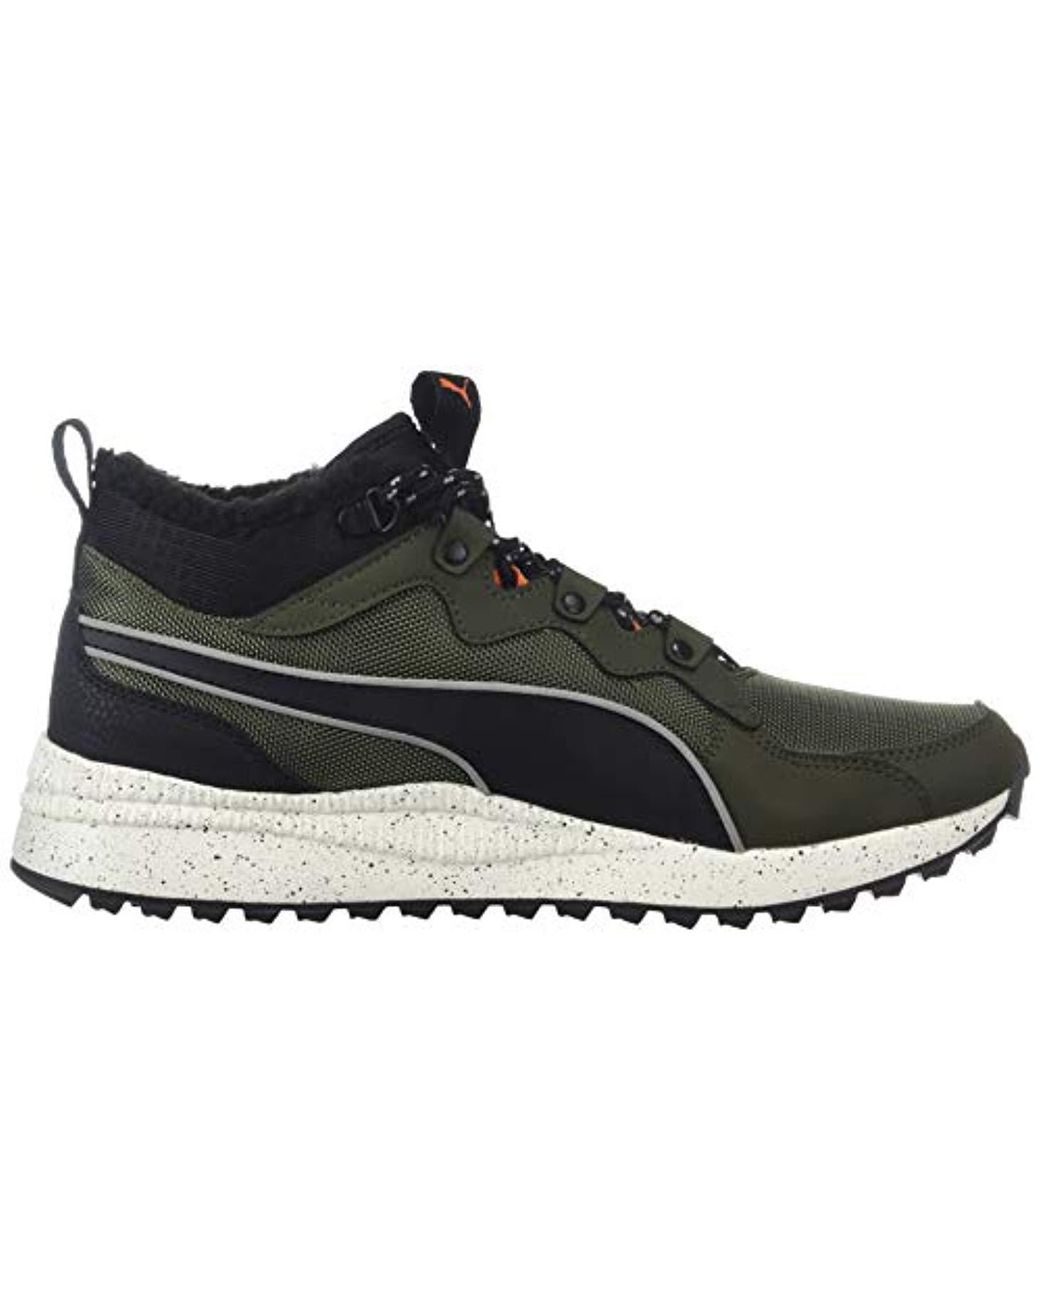 5cdd73a22844 Lyst - PUMA Pacer Next Sb Wtr Sneaker in Black for Men - Save 15%